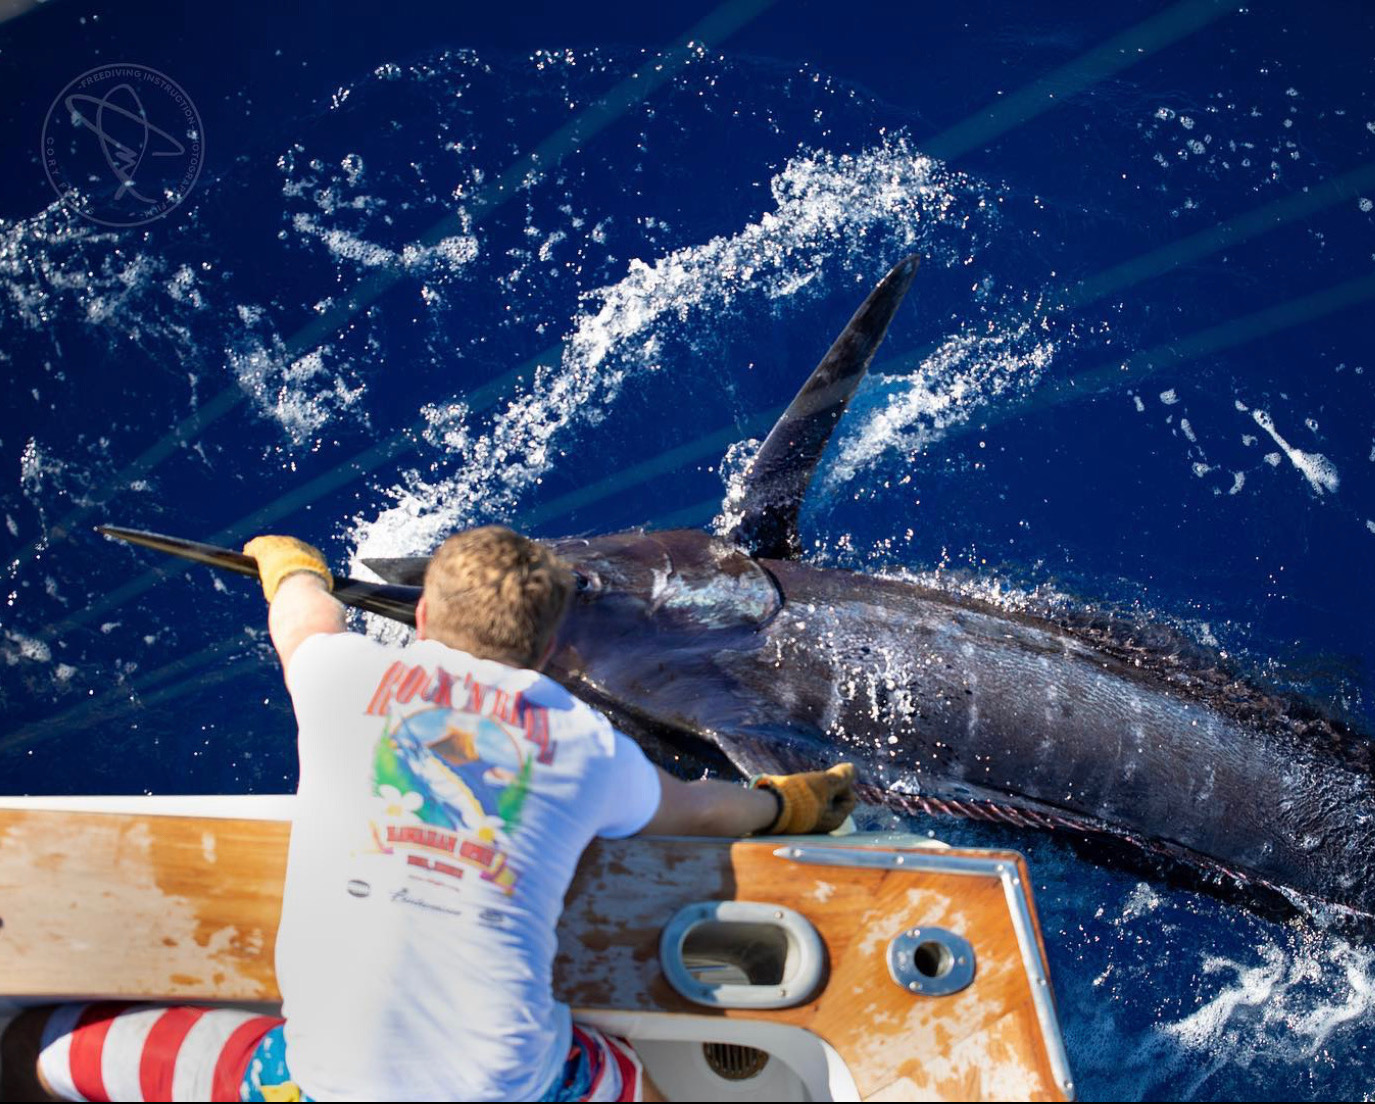 3/4 Day Fishing (6 Hours) - BOOKS UP TO: 6 guestsINCLUDES: class 130 & 50 class fishing equipment, light snacks, water, and ice.This charter can be booked for a nearly full day of fishing. Join our crew to sail the beautiful Hawaiian waters and reel in an unforgettable catch.Learn more